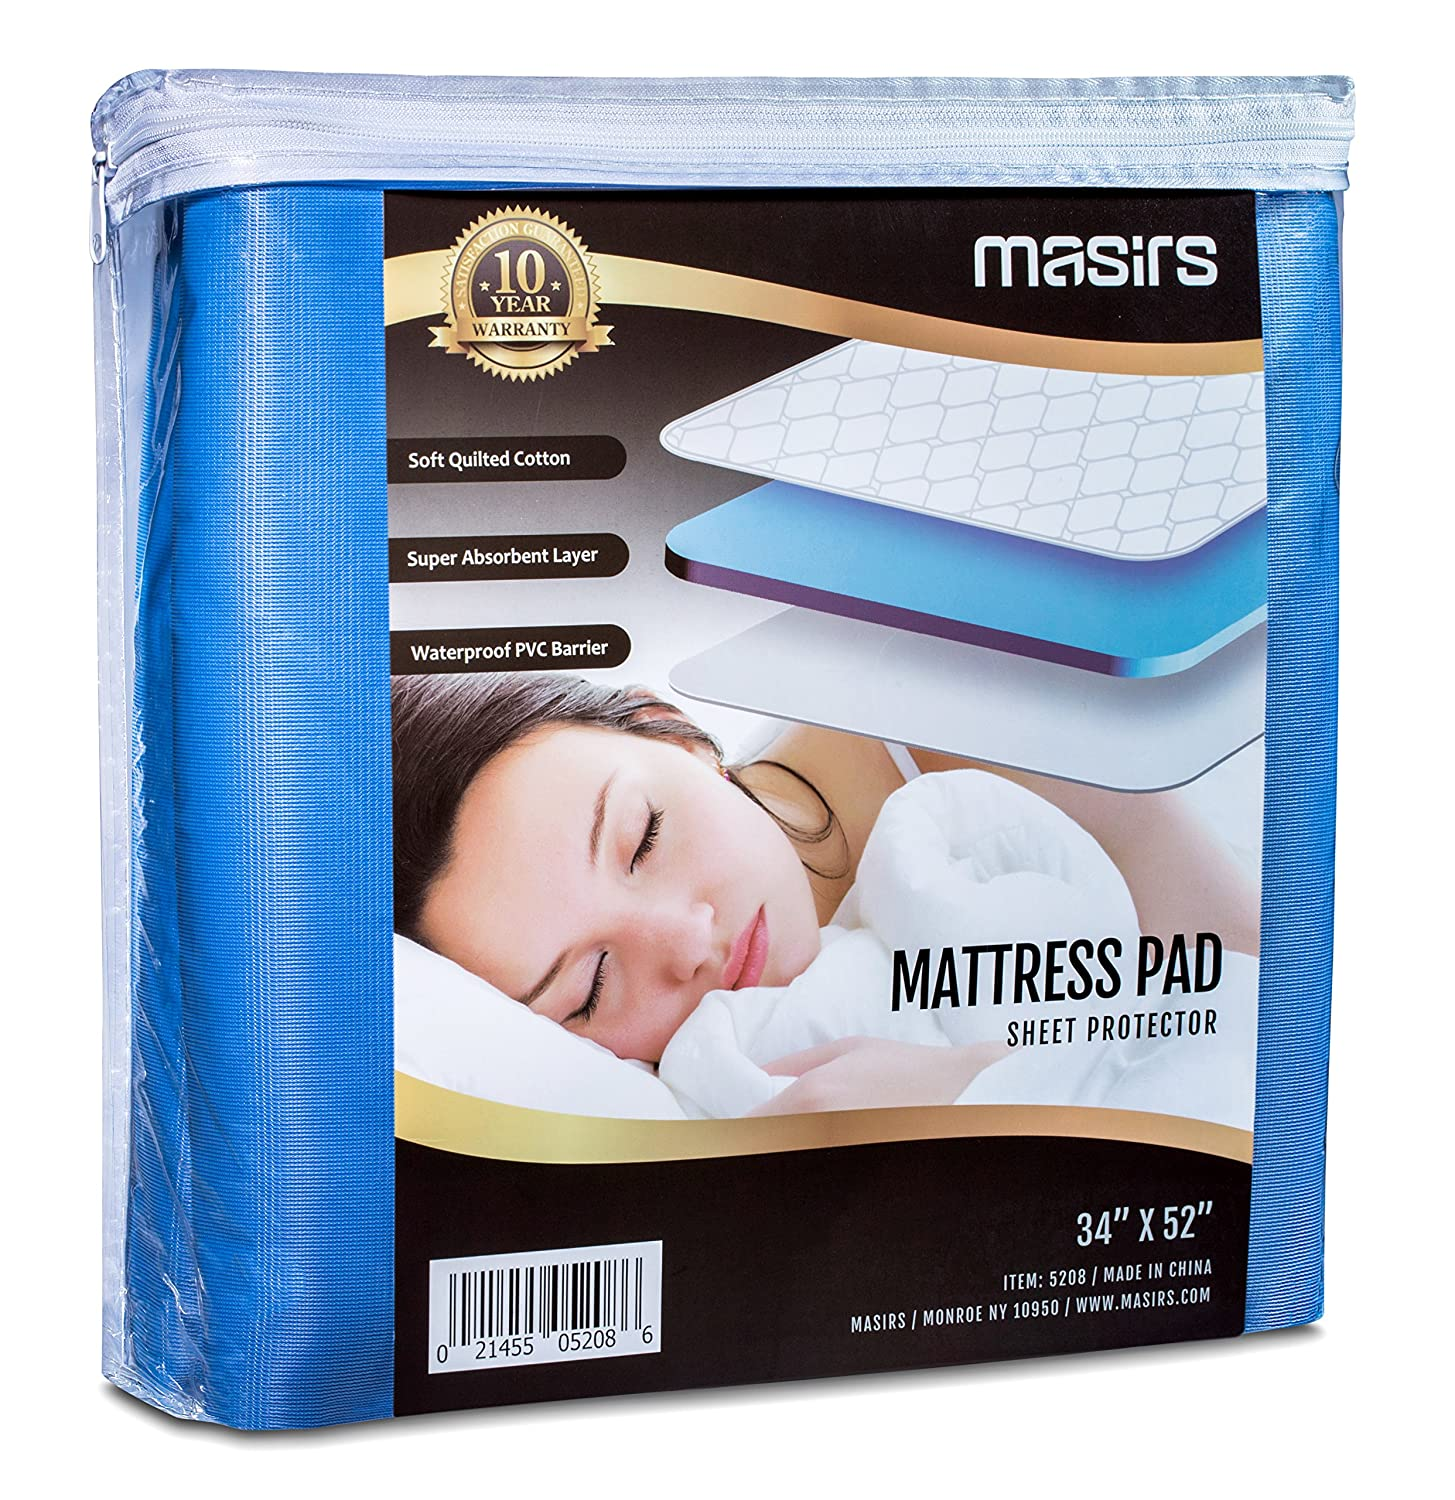 amazon com mattress pad sheet protector soft quilted cotton with